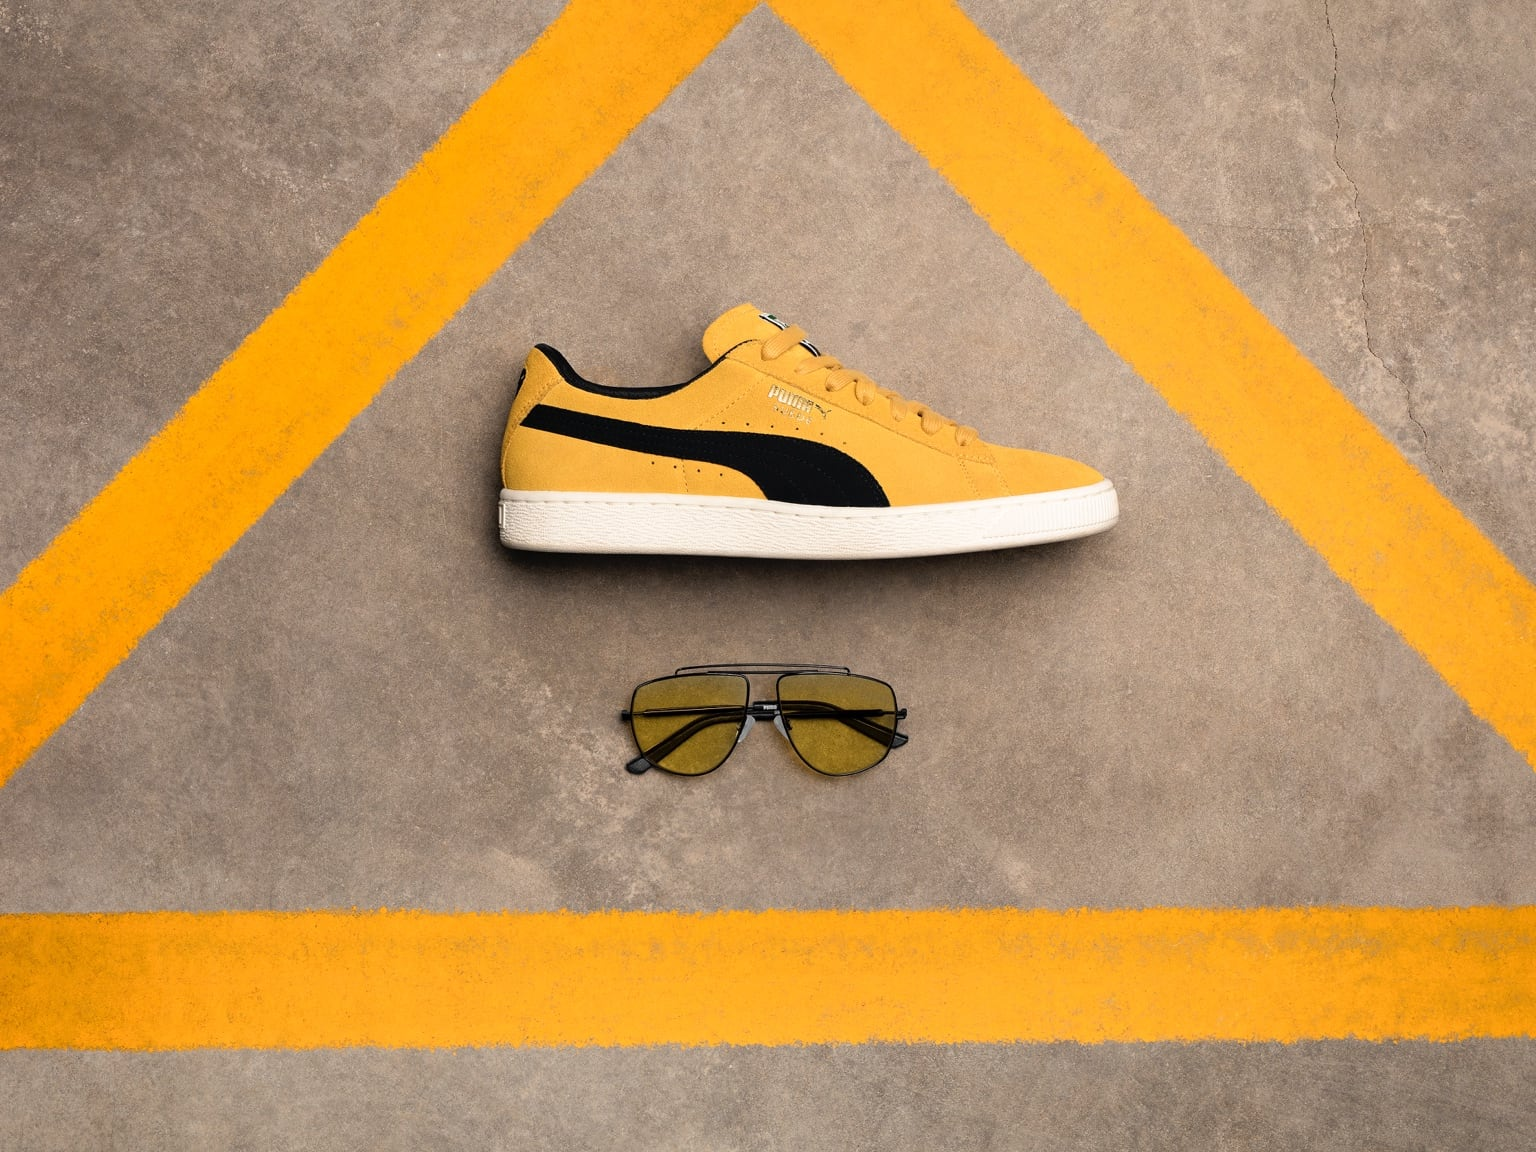 Kering Eyewear and PUMA Suede shoe